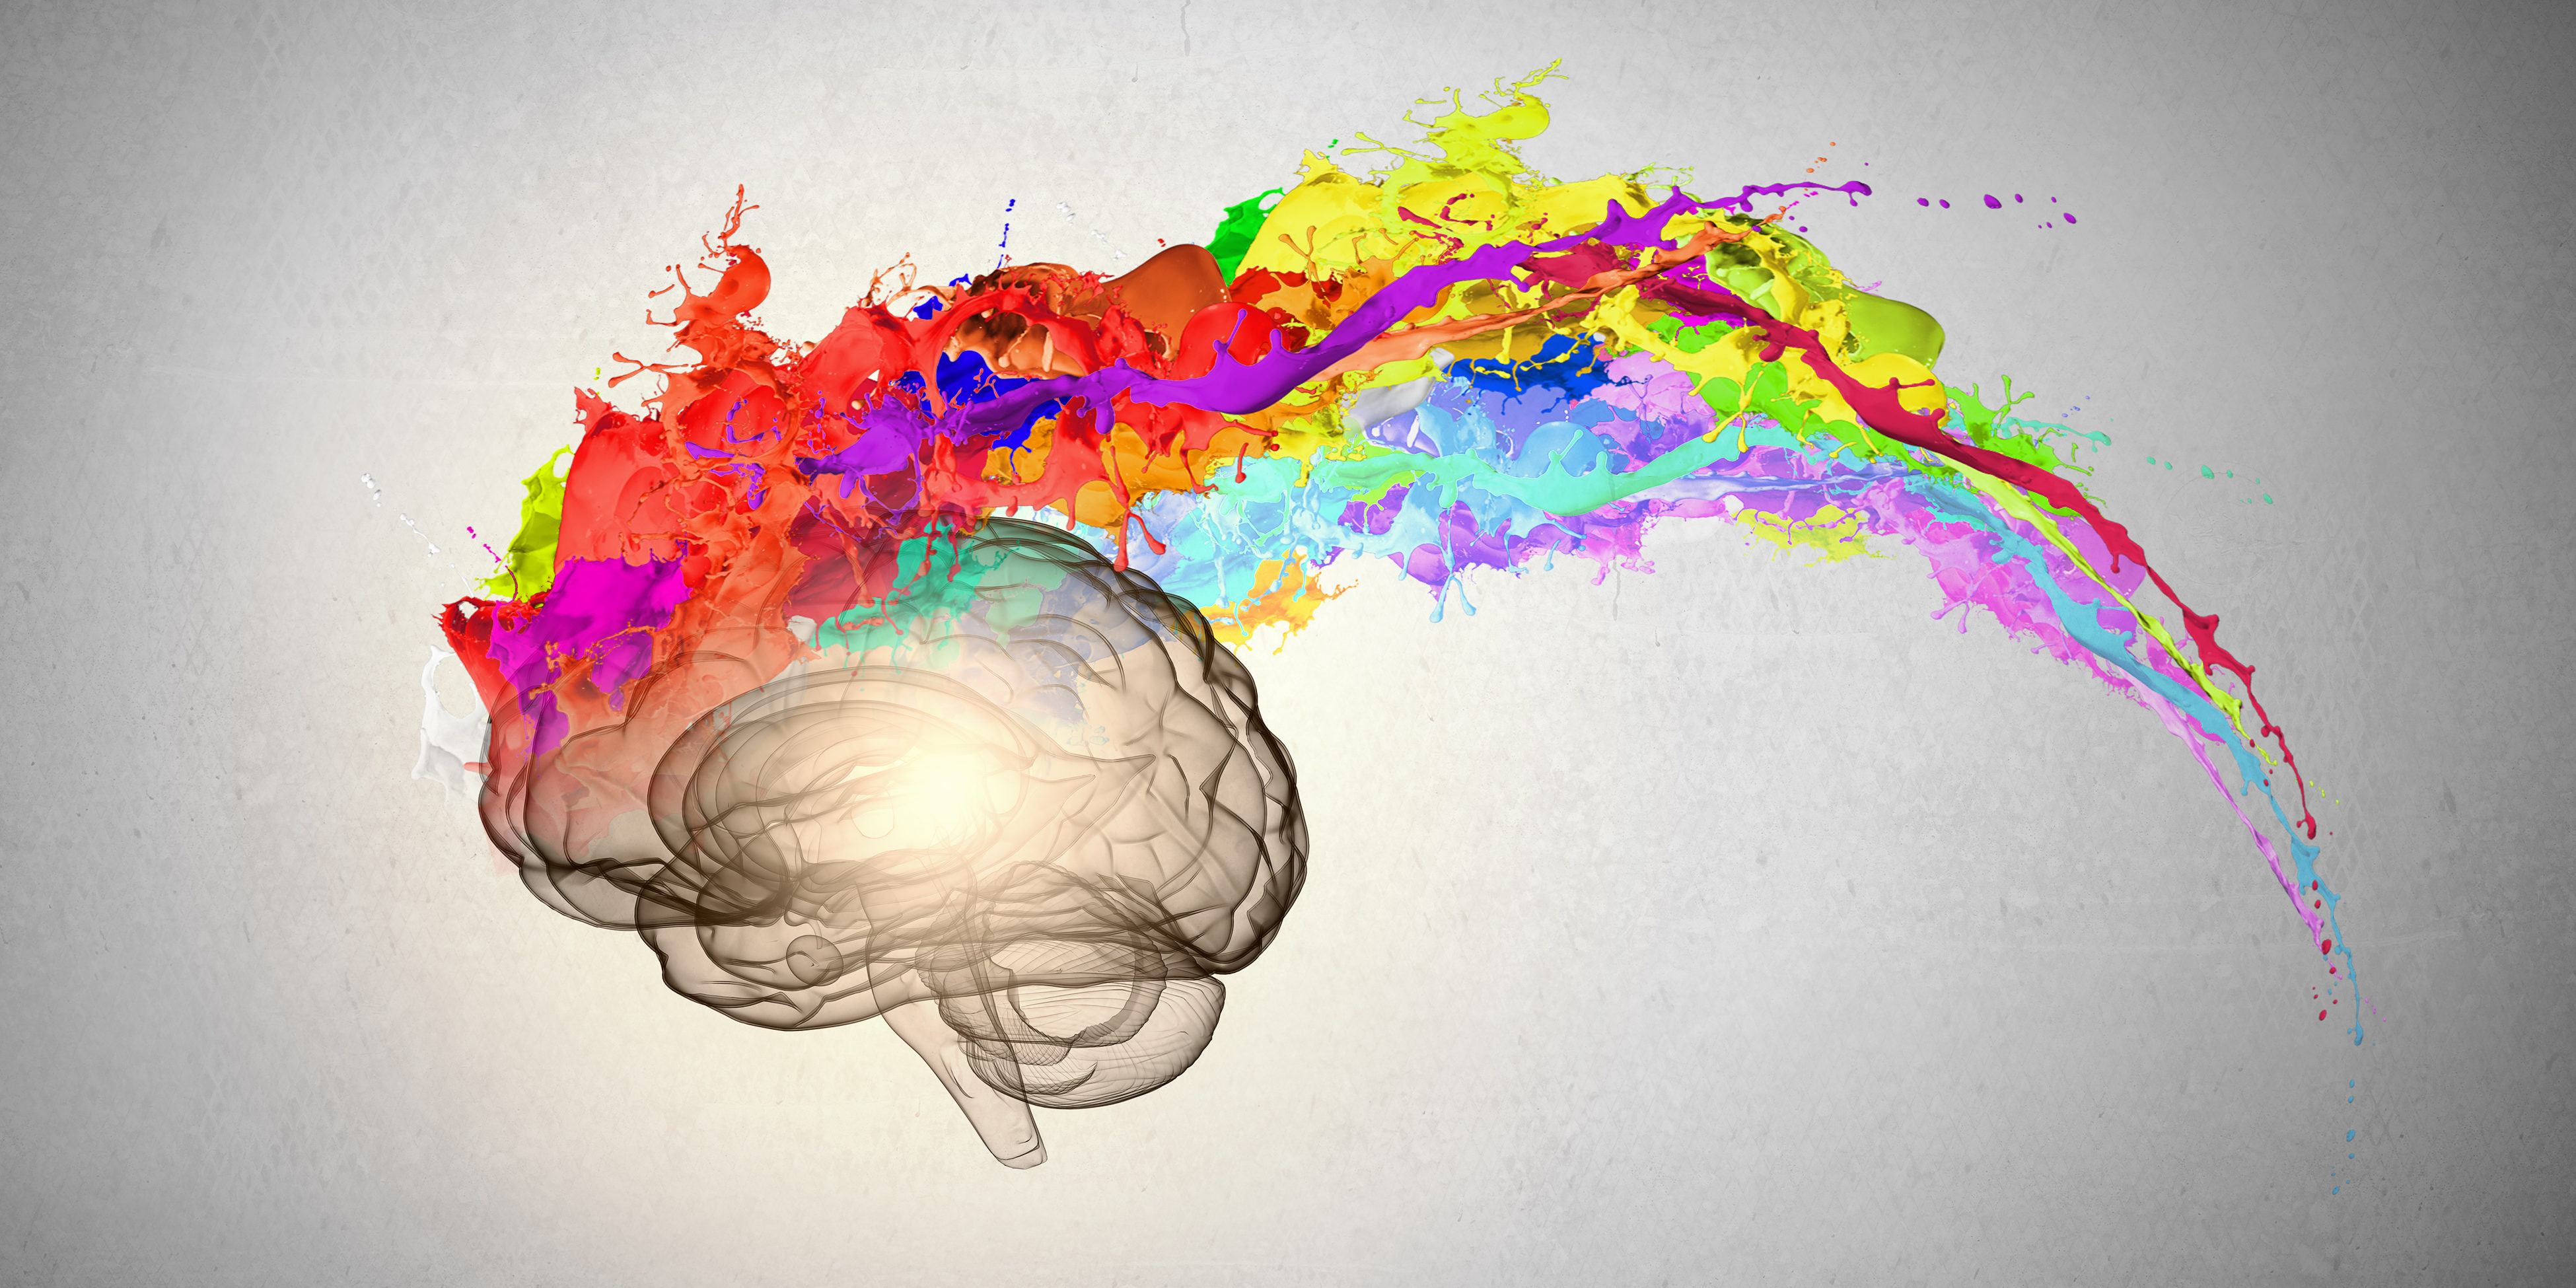 a brain showing creativity - paint coming out of the brain